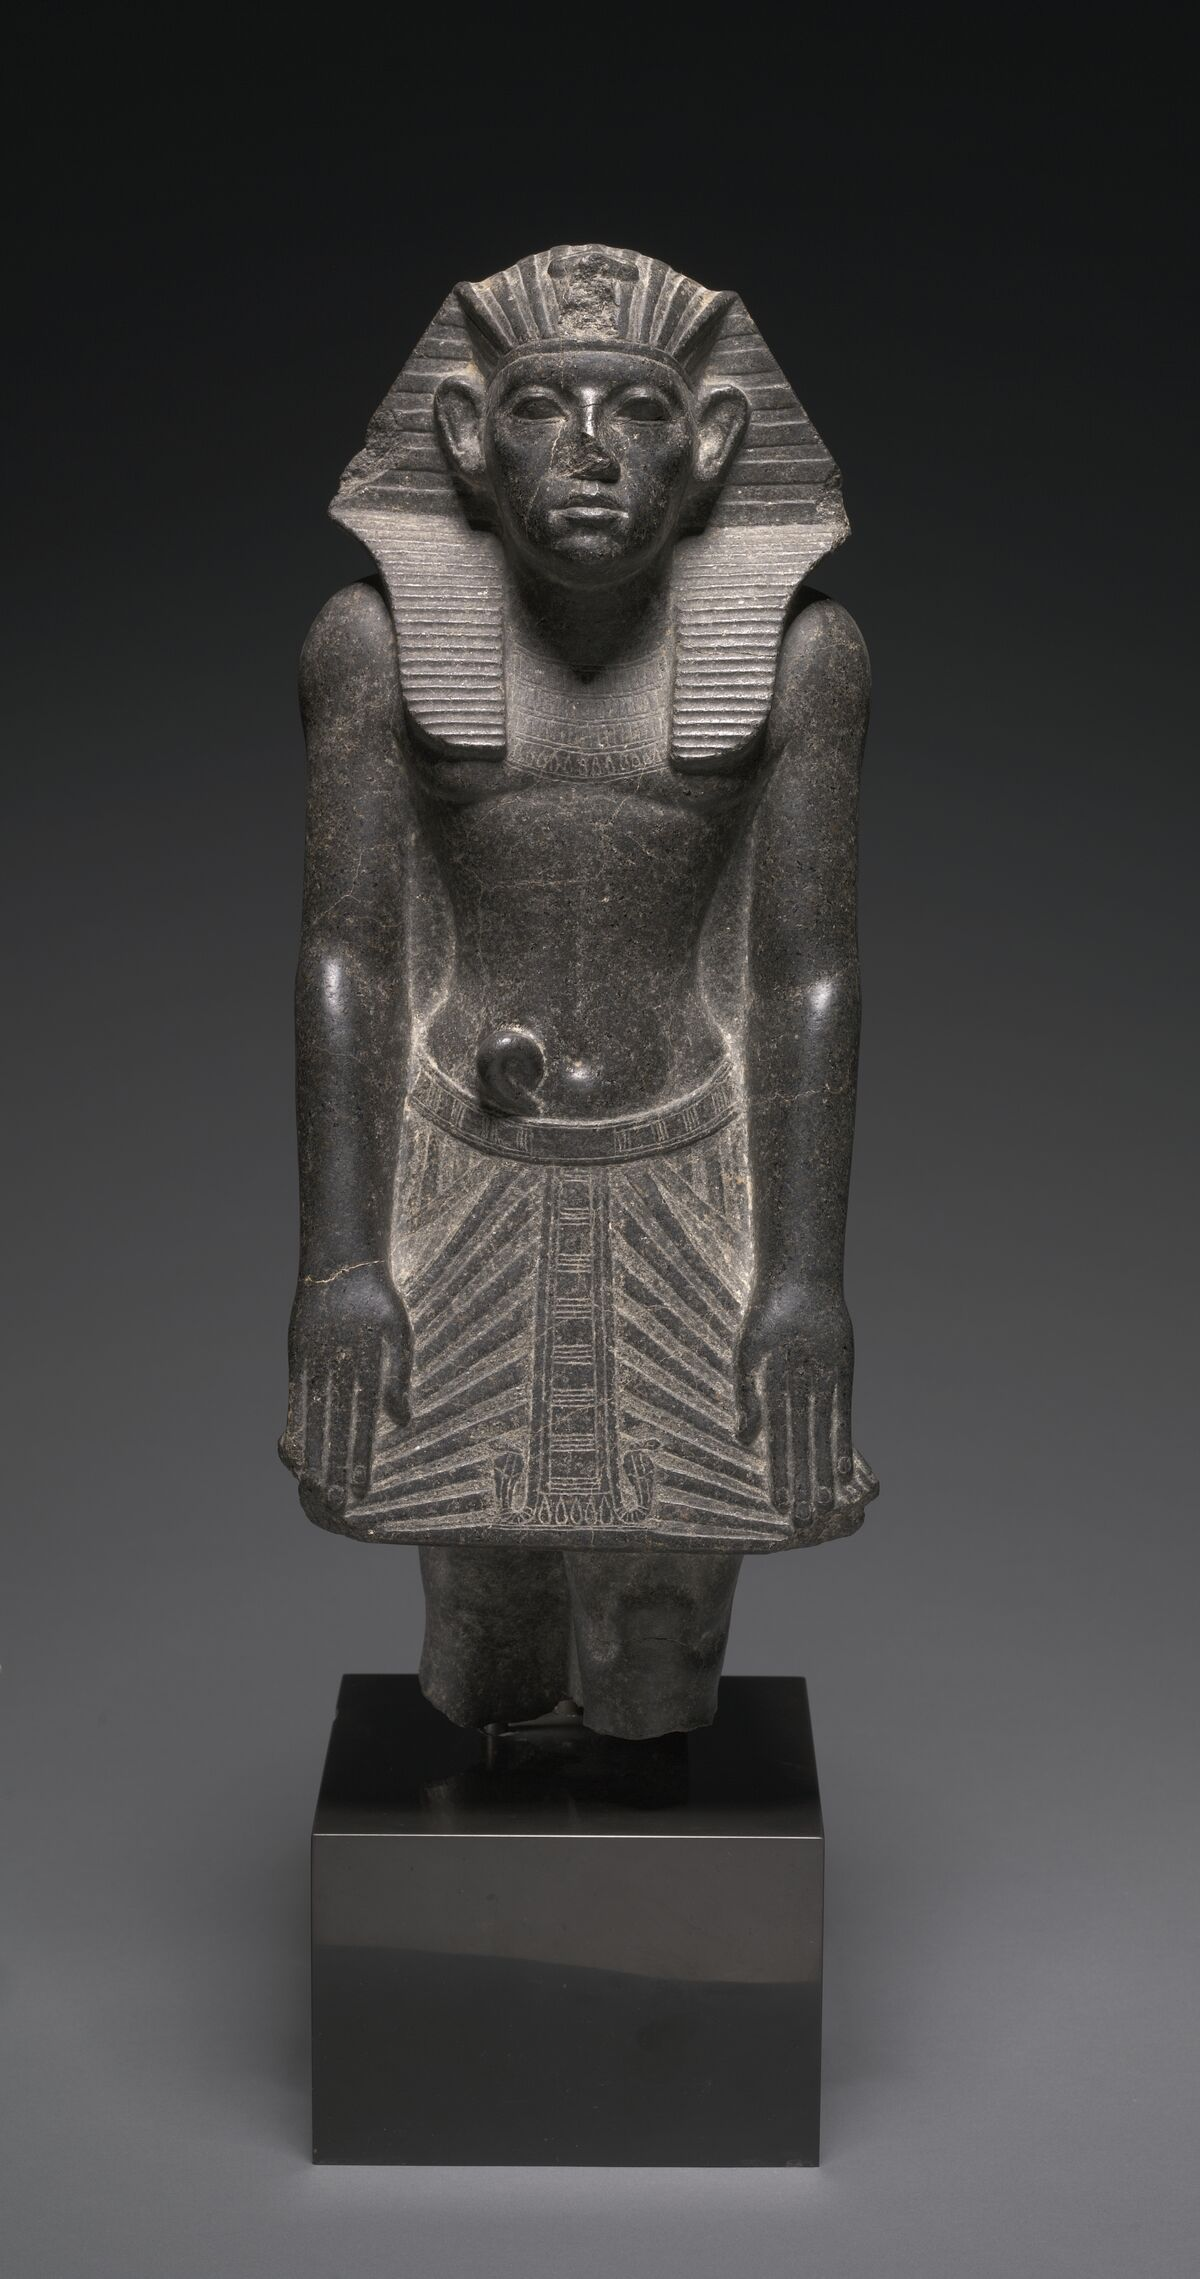 Why Do so Many Egyptian Statues Have Broken Noses? - Artsy